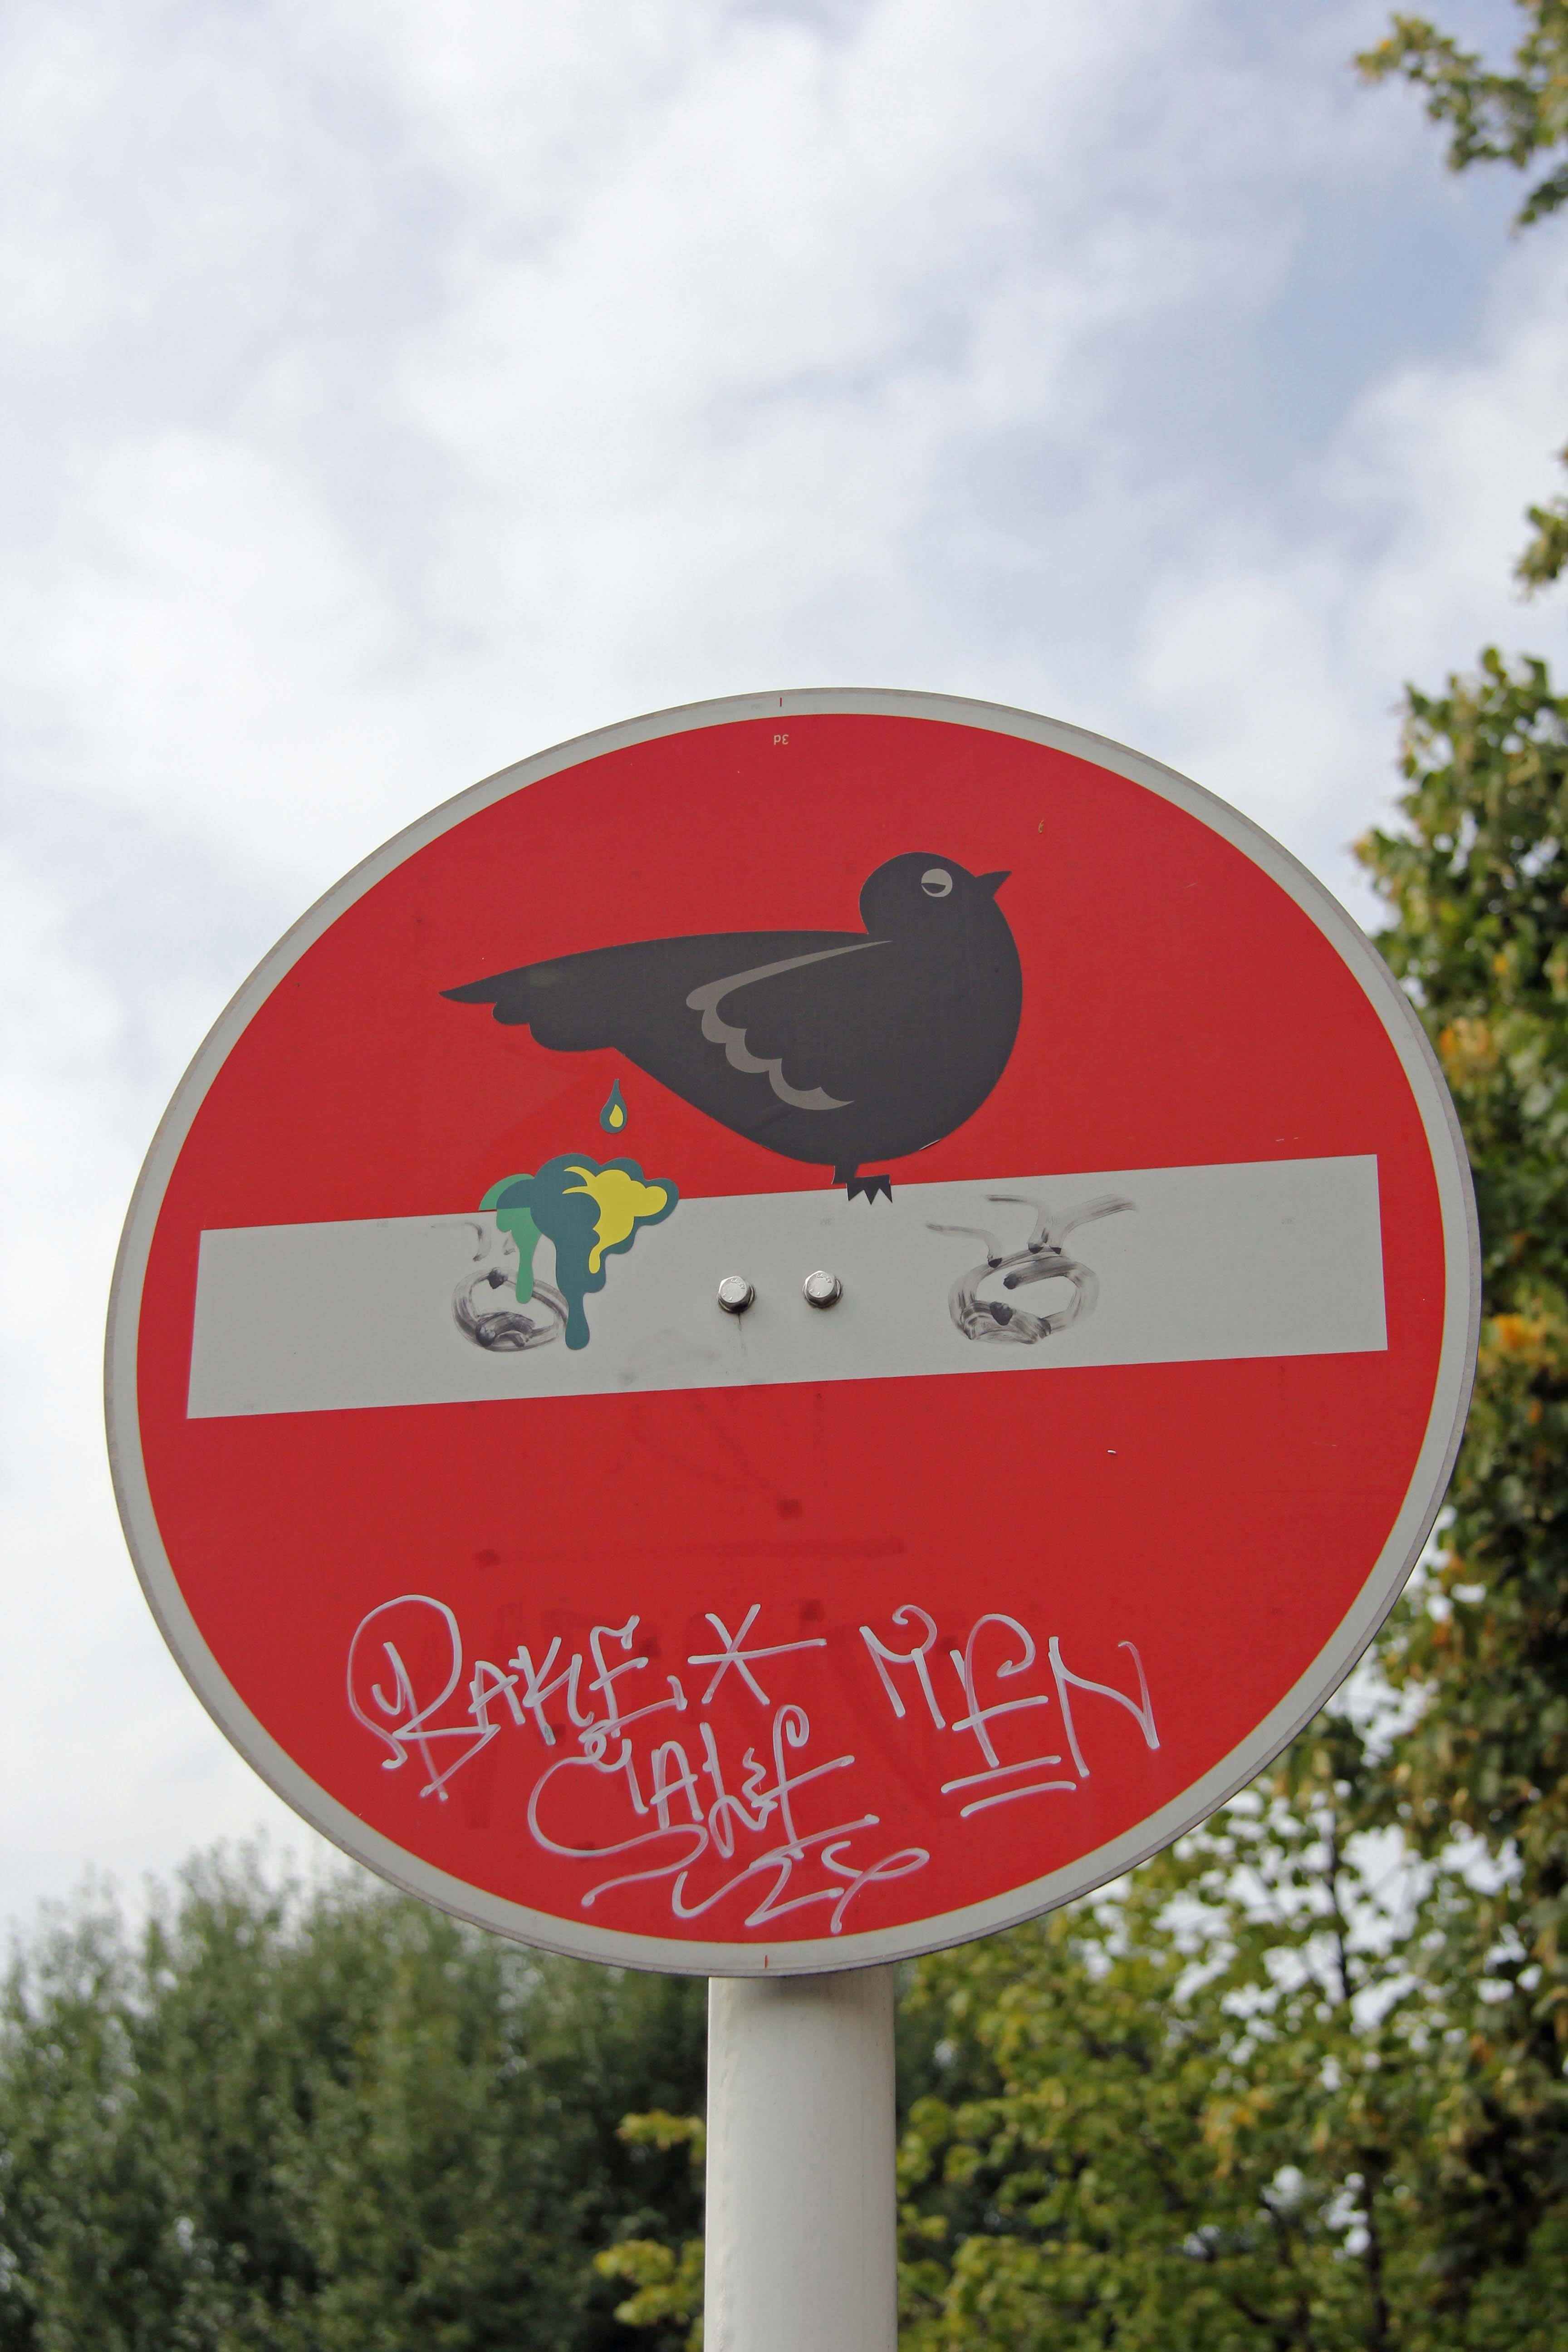 Bird Shitting On Perch: A modified street sign - Street Art by CLET in Berlin